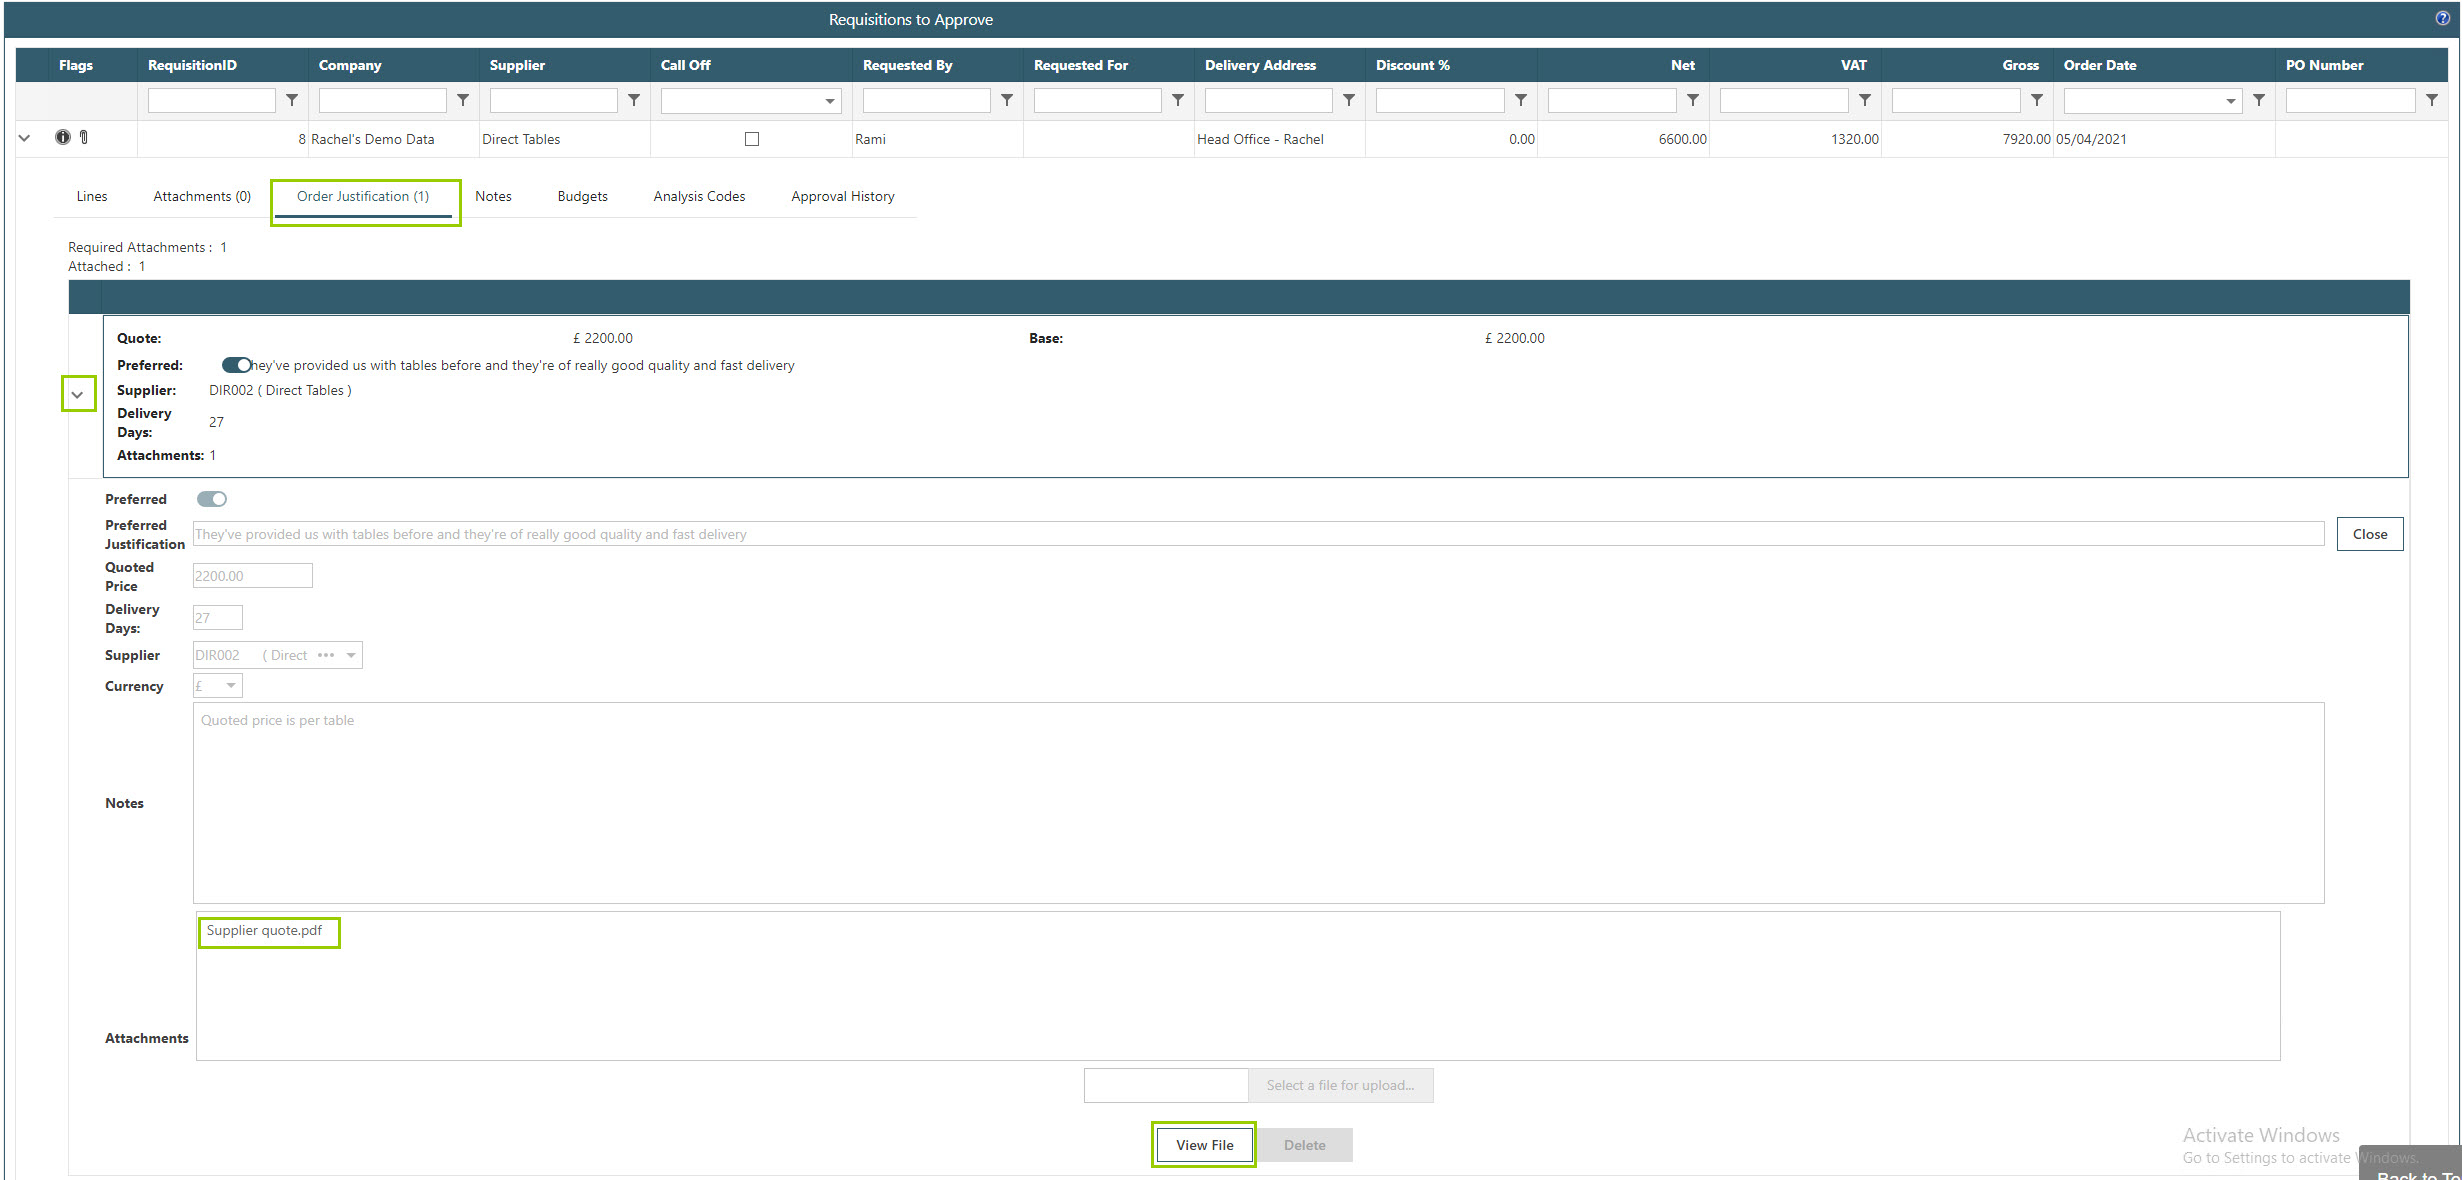 Sicon WAP Purchase Requisitions Help and User Guide - Requisition HUG Section 12.4 Image 1